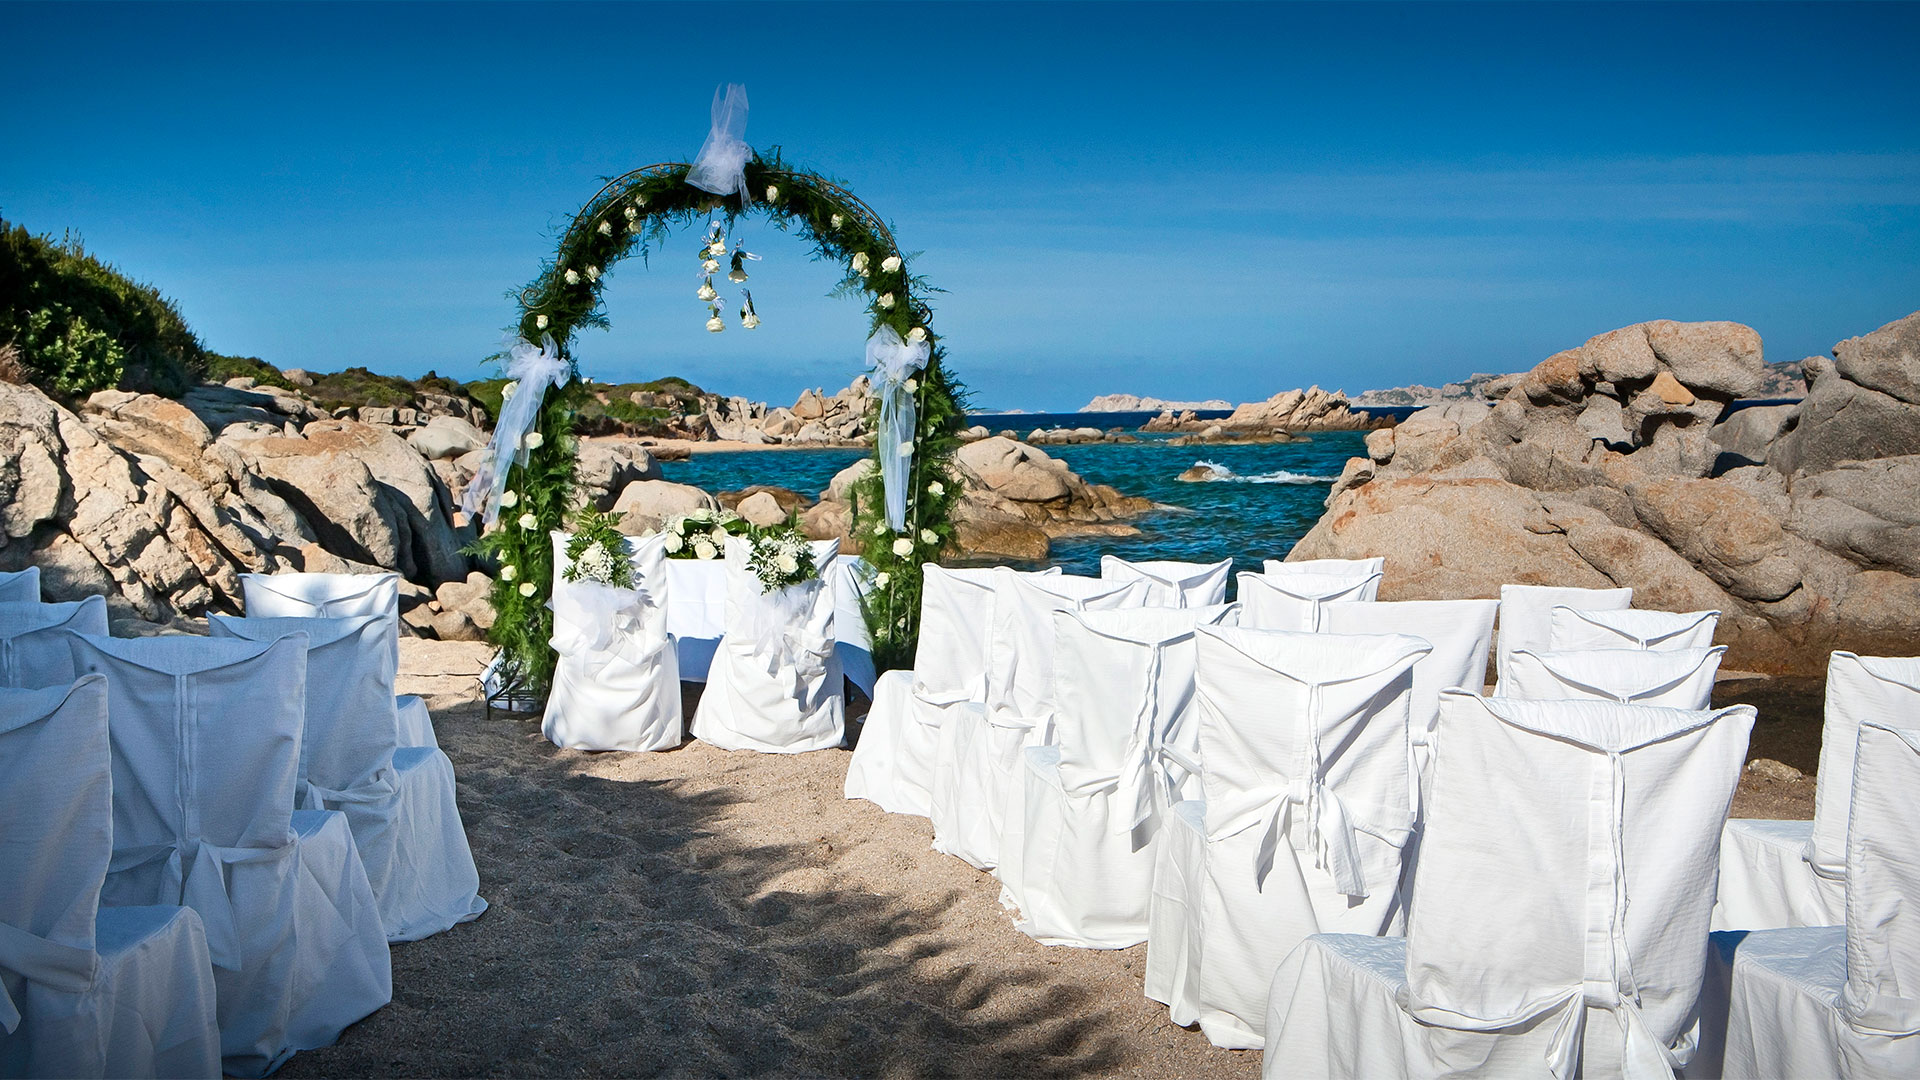 delphina-hotels-slide-nozze-matrimoni-wedding-mare-sardegna-1